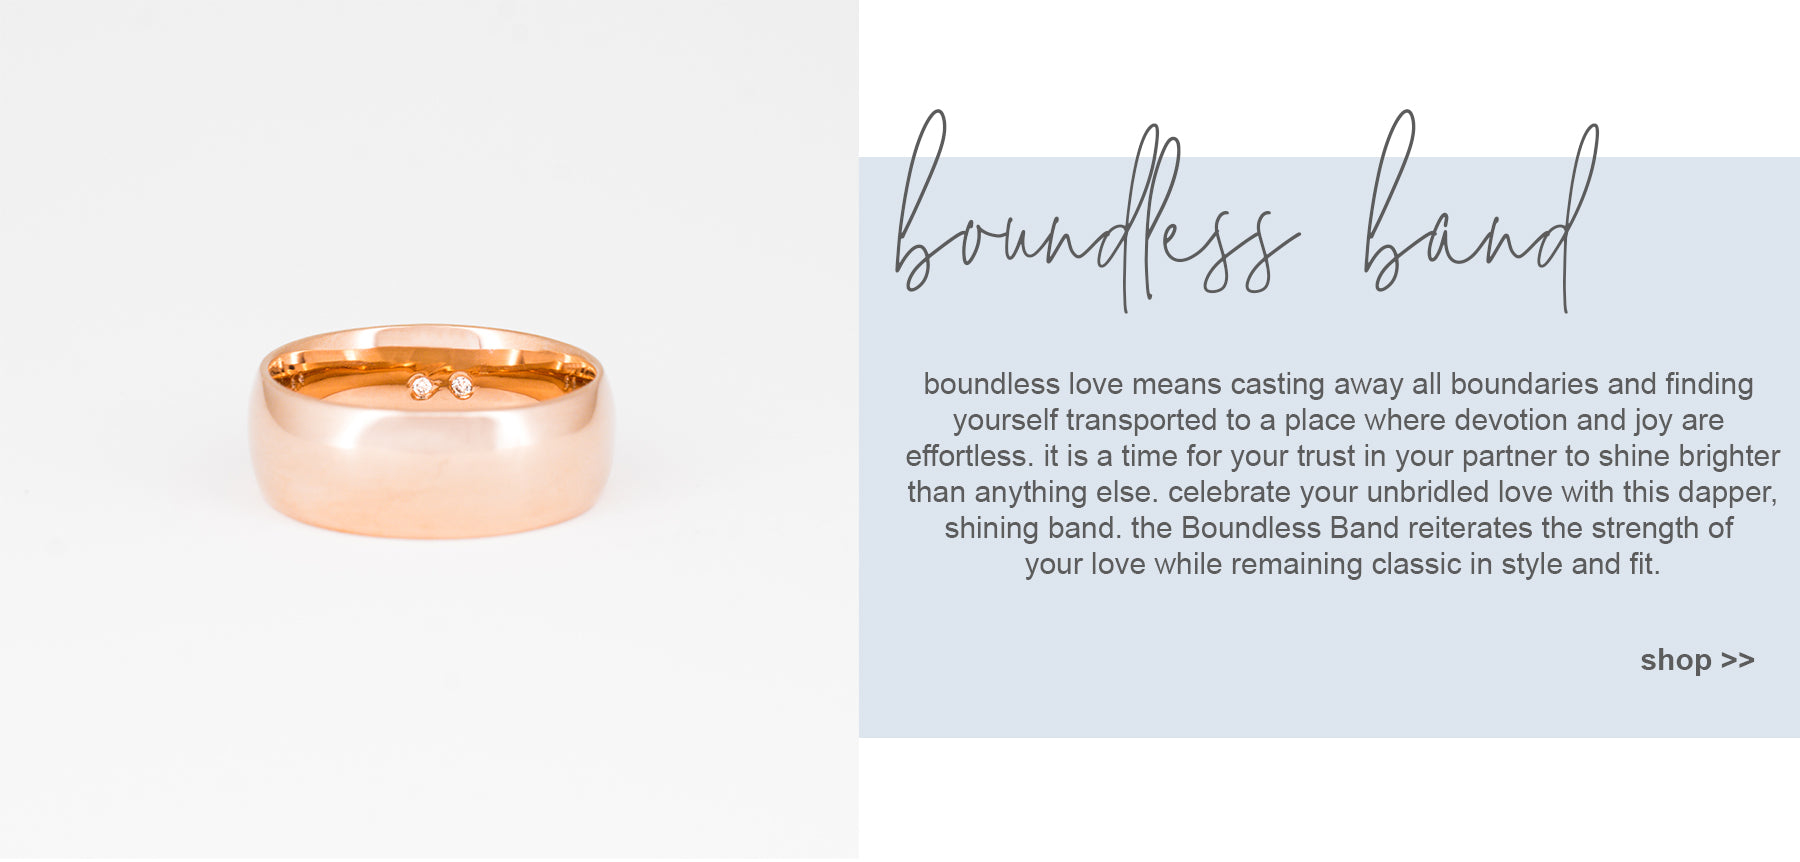 boundless band - 14k gold men's band bluboho